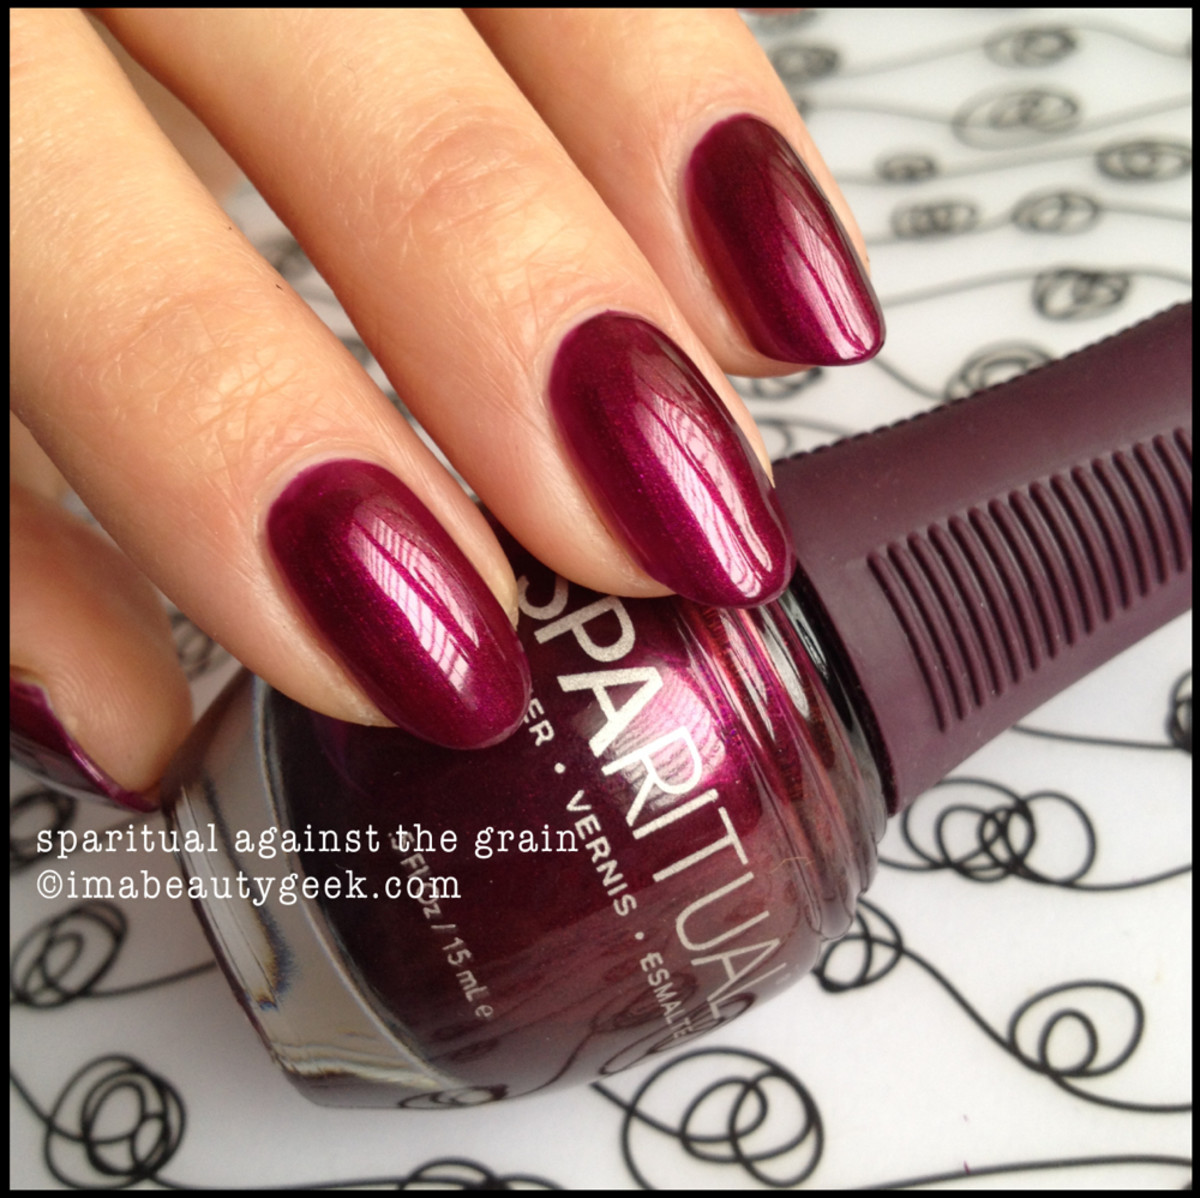 Sparitual Against The Grain Swatch 2